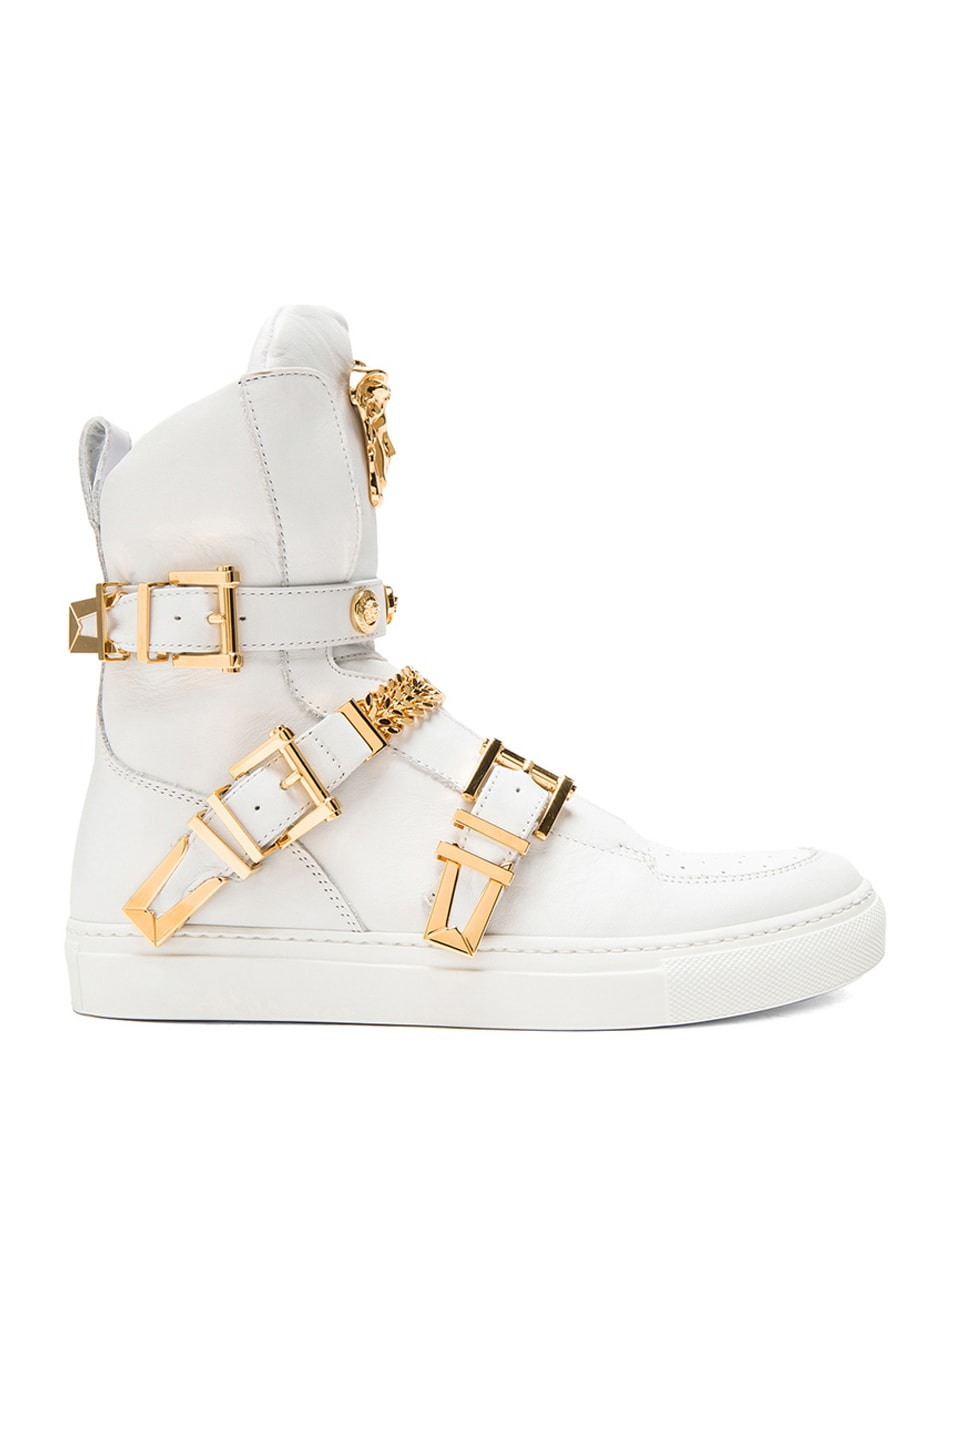 Image 1 of VERSACE Tri Buckle Medusa Head Leather Sneakers in White & Gold